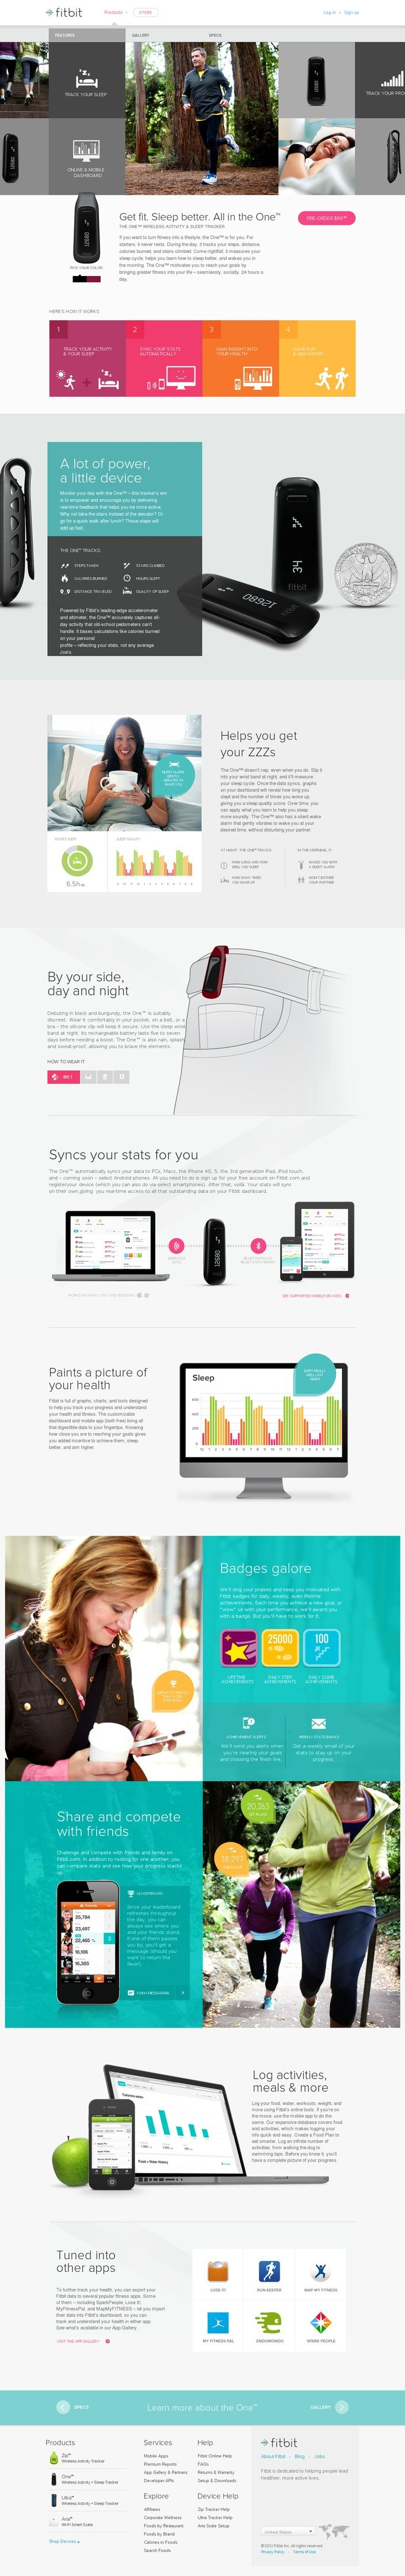 fitbit website #webdesign